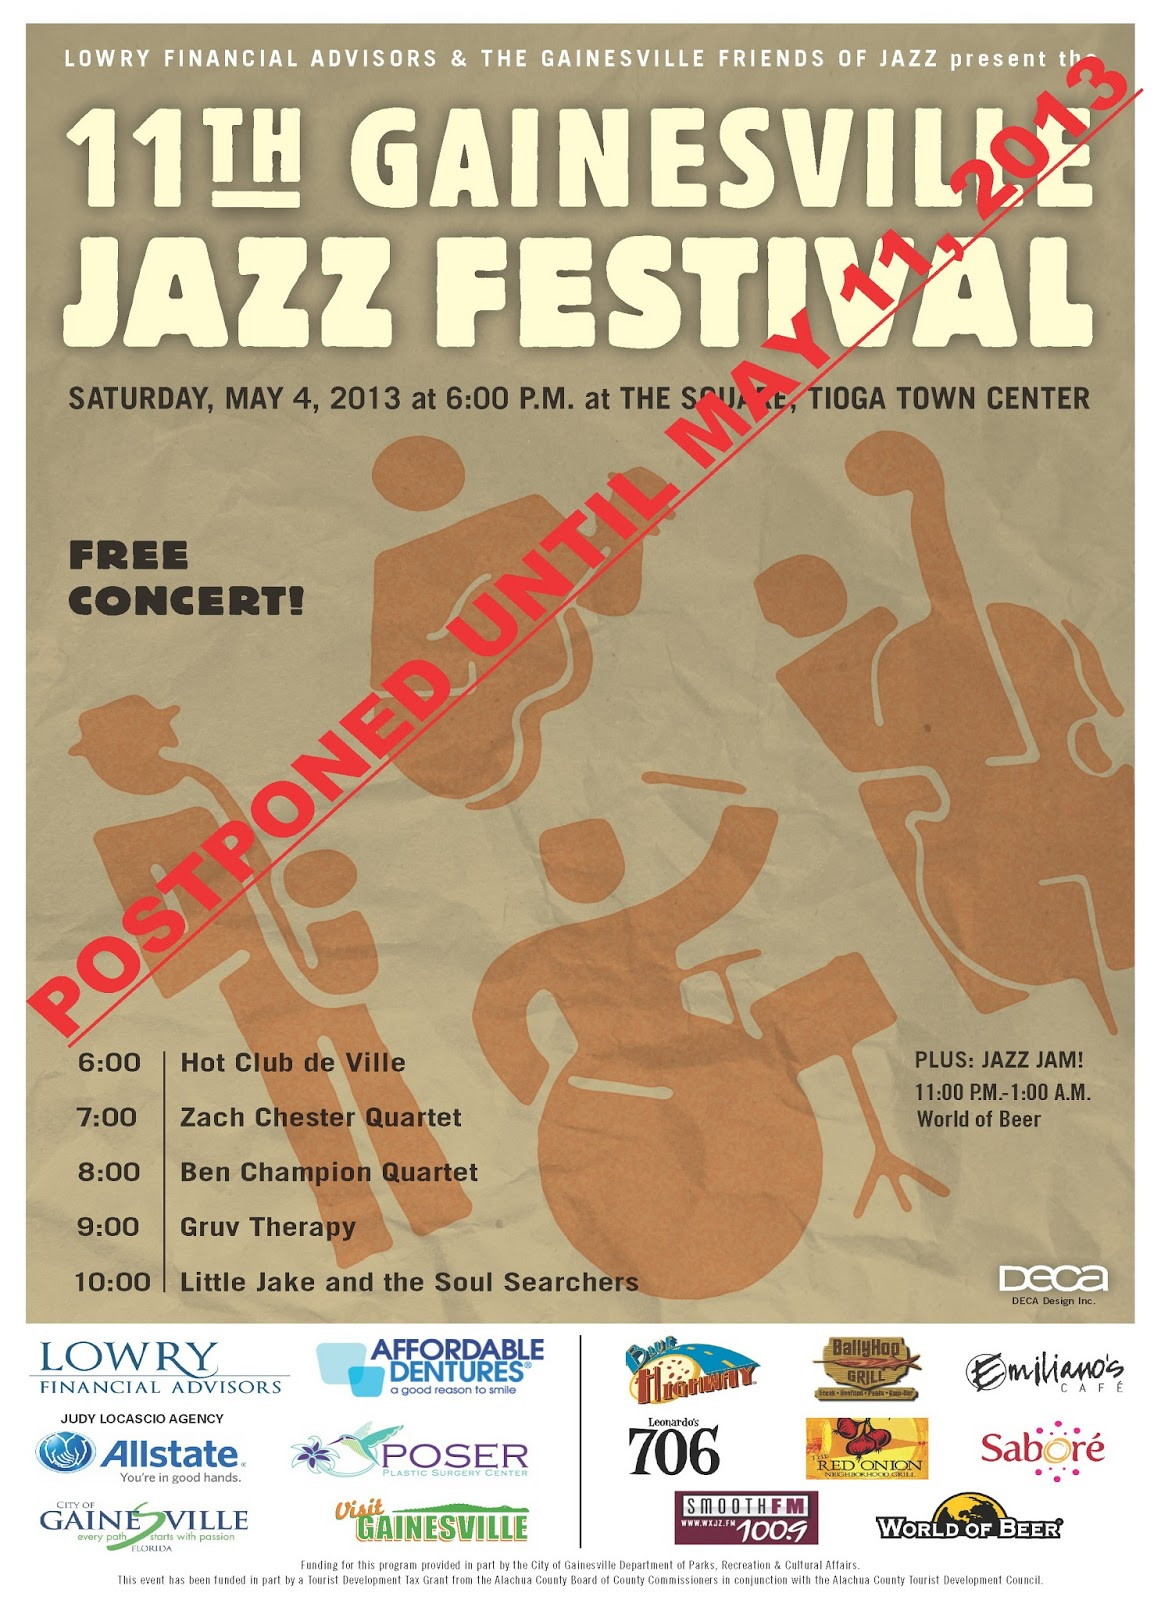 Gainesville Jazz Festival - POSTPONED UNTIL MAY 11TH DUE TO WEATHER